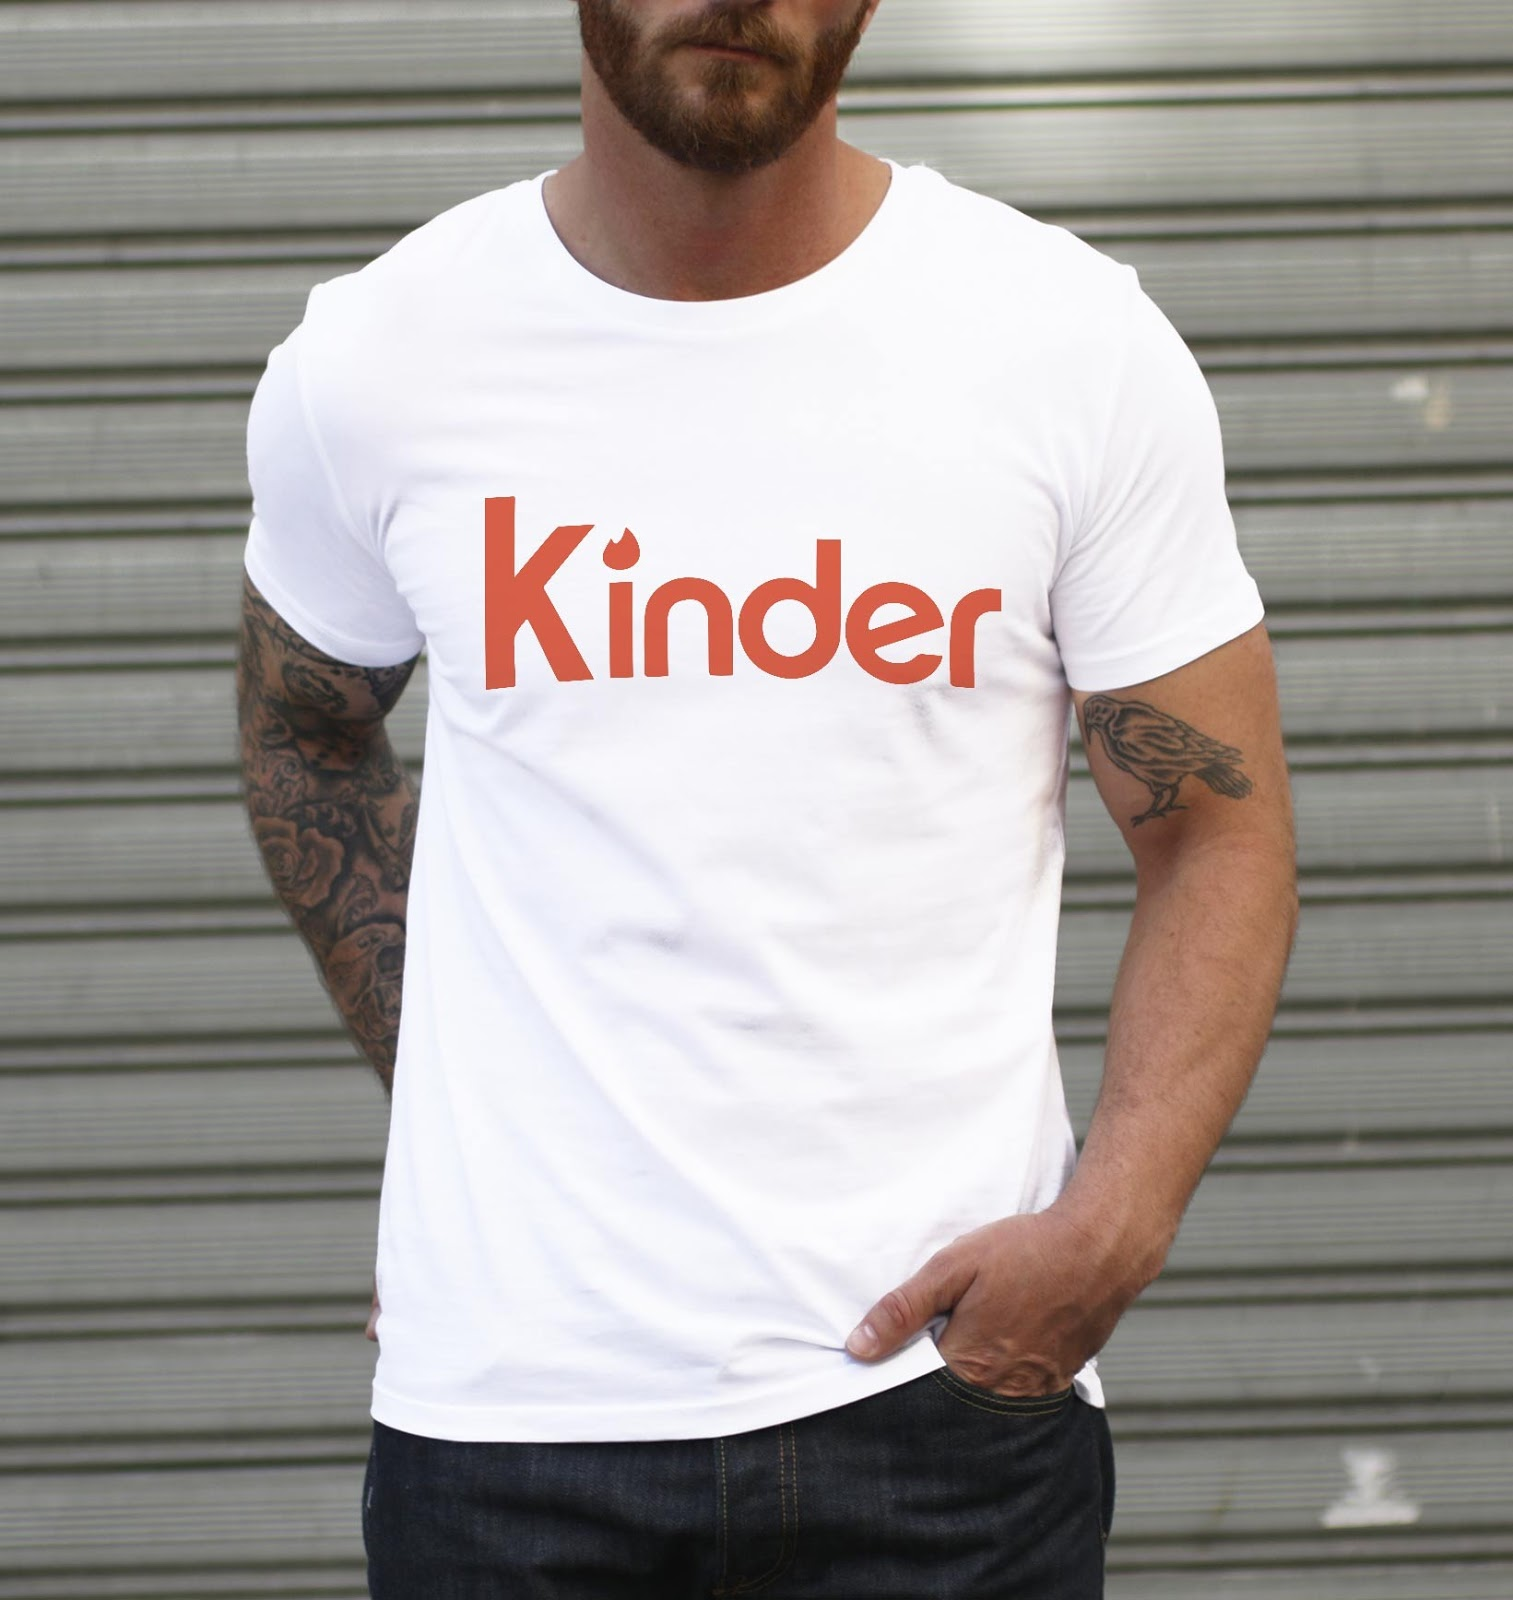 https://grafitee.co/tshirts/kinder-tee-shirt